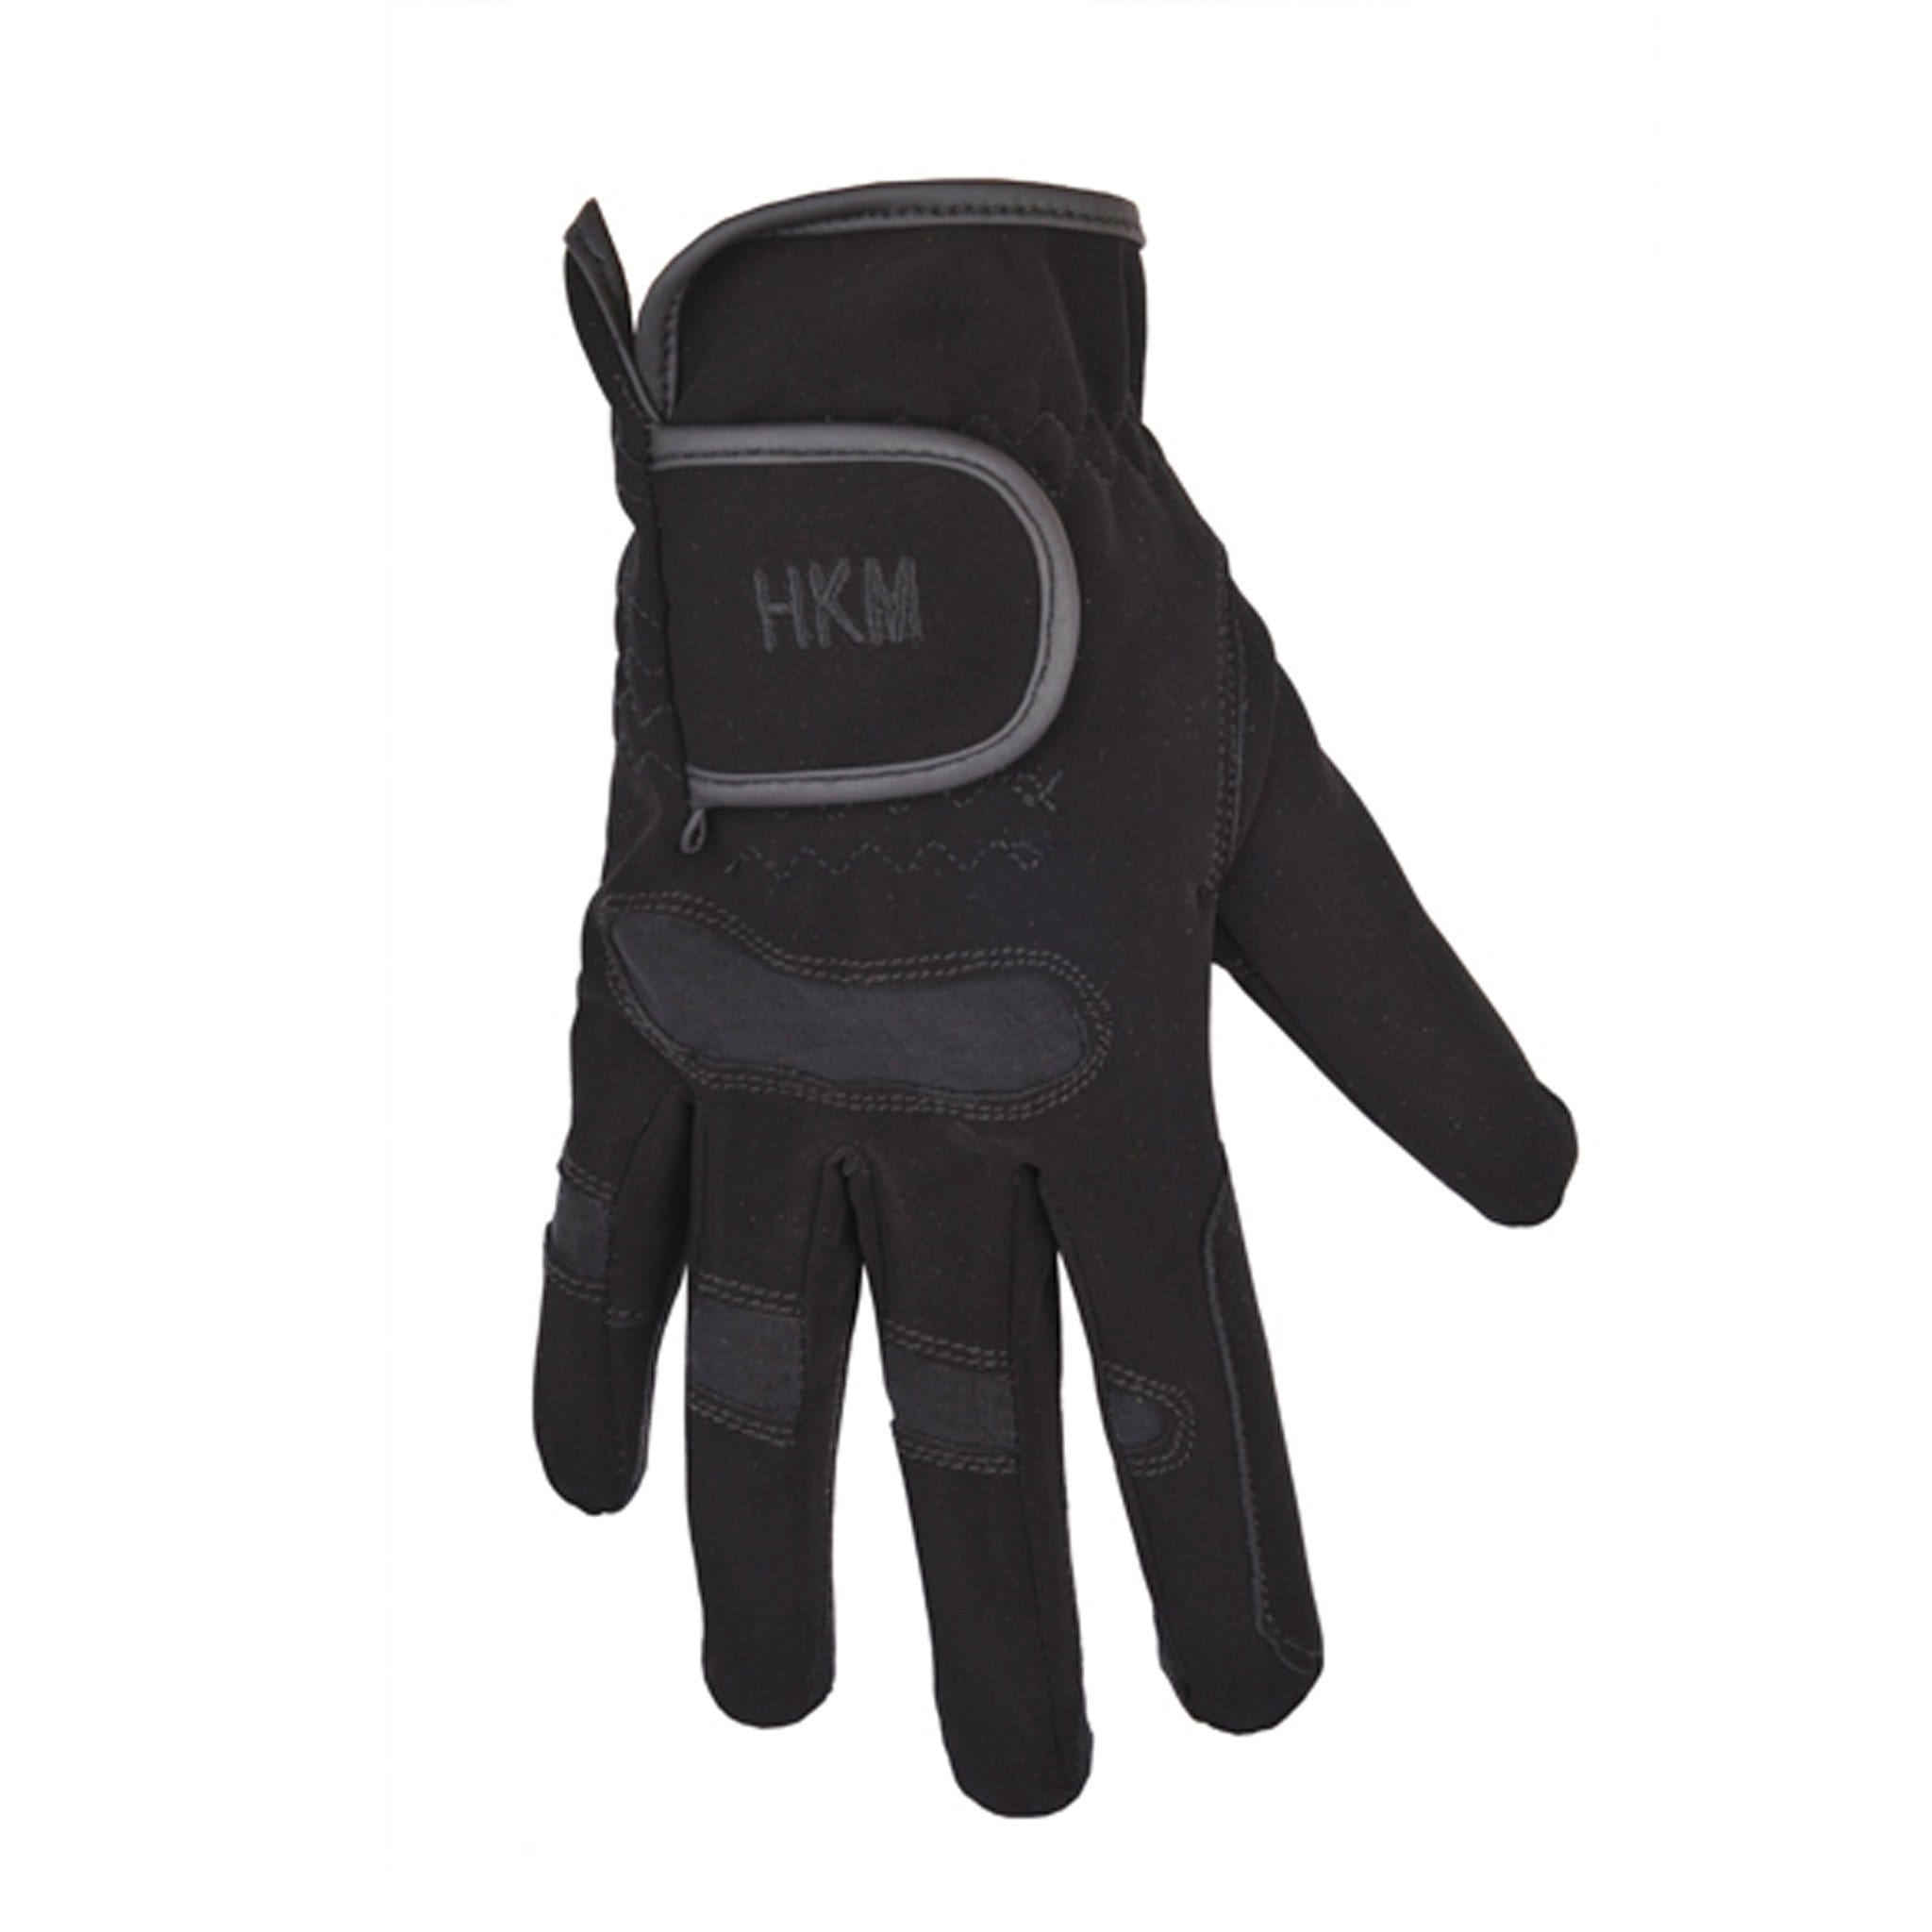 HKM Children's Softy Riding Glove with Elasticated Vent - EQUUS 1301 Black